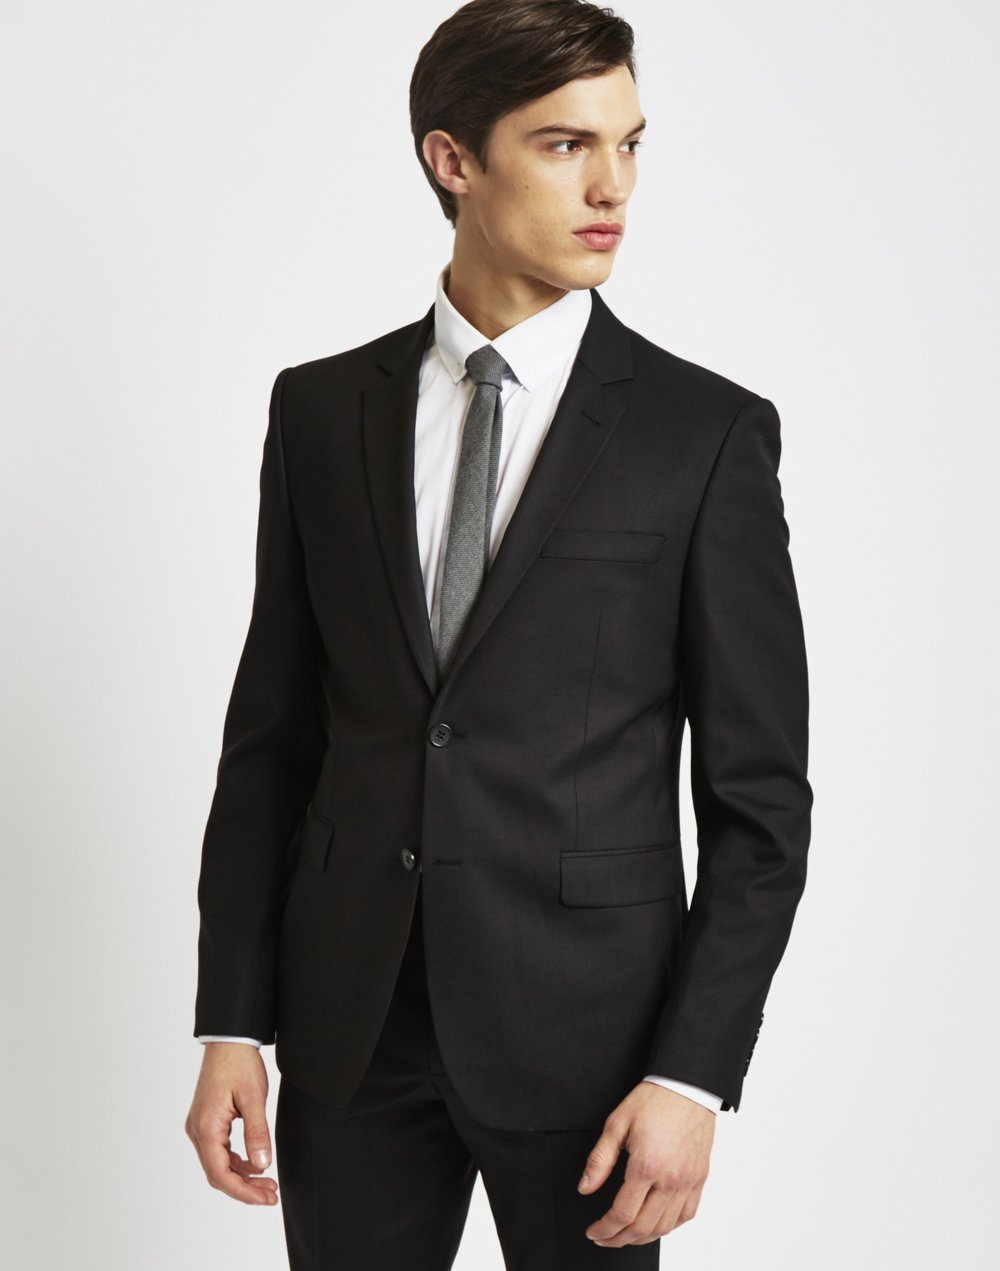 Sample Men's suit